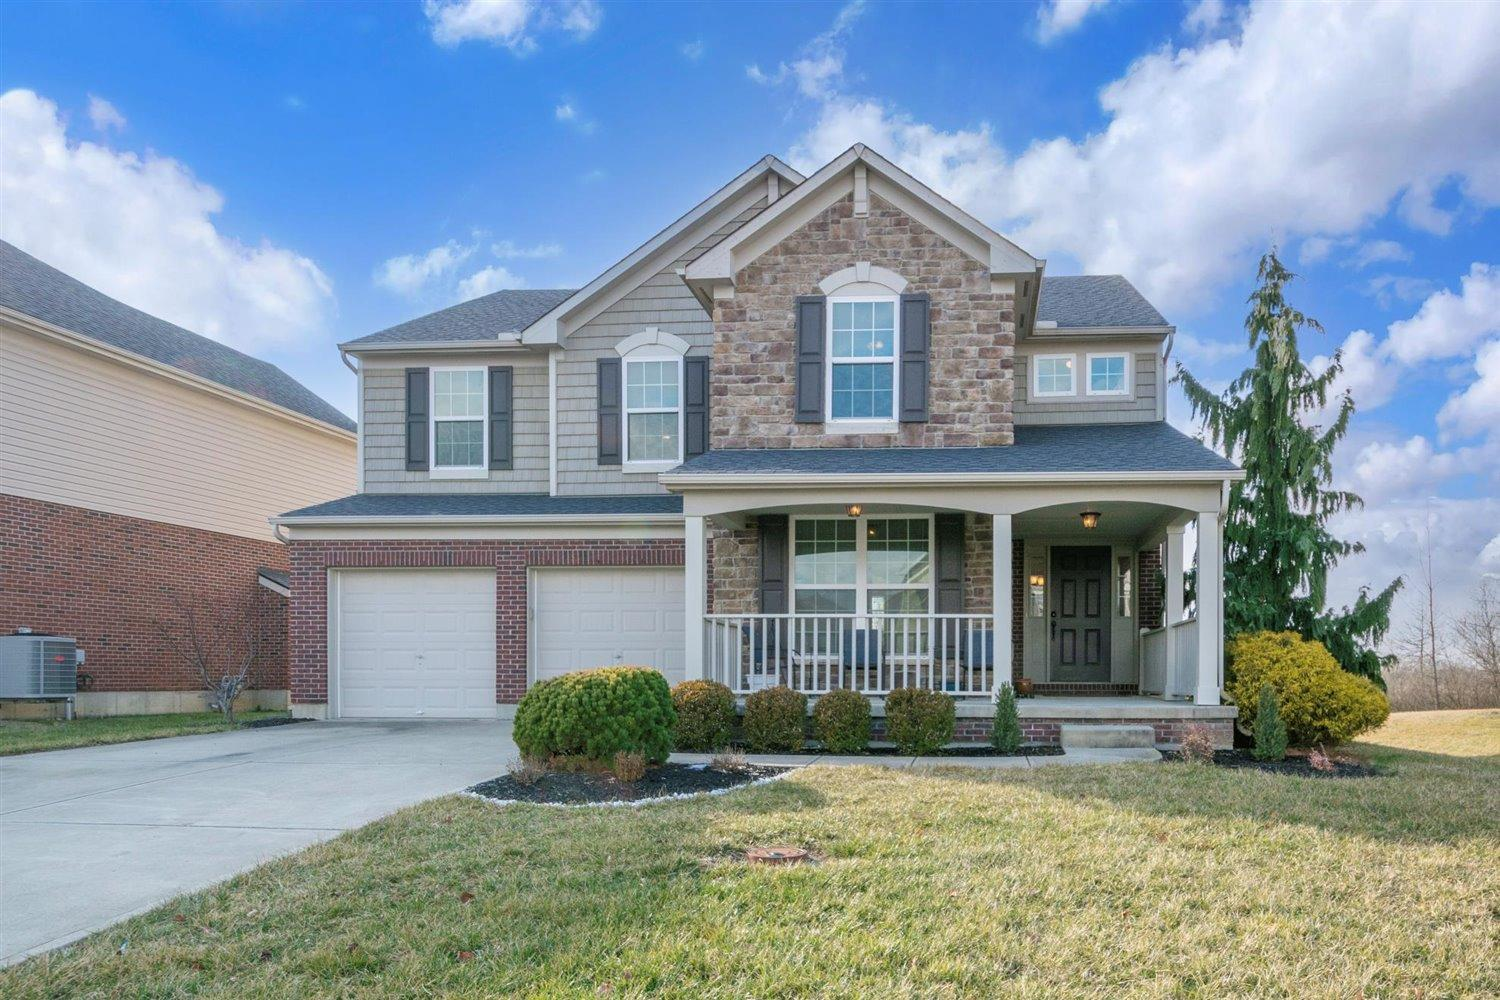 Property for sale at 8323 Windy Harbor Way, West Chester,  Ohio 45069